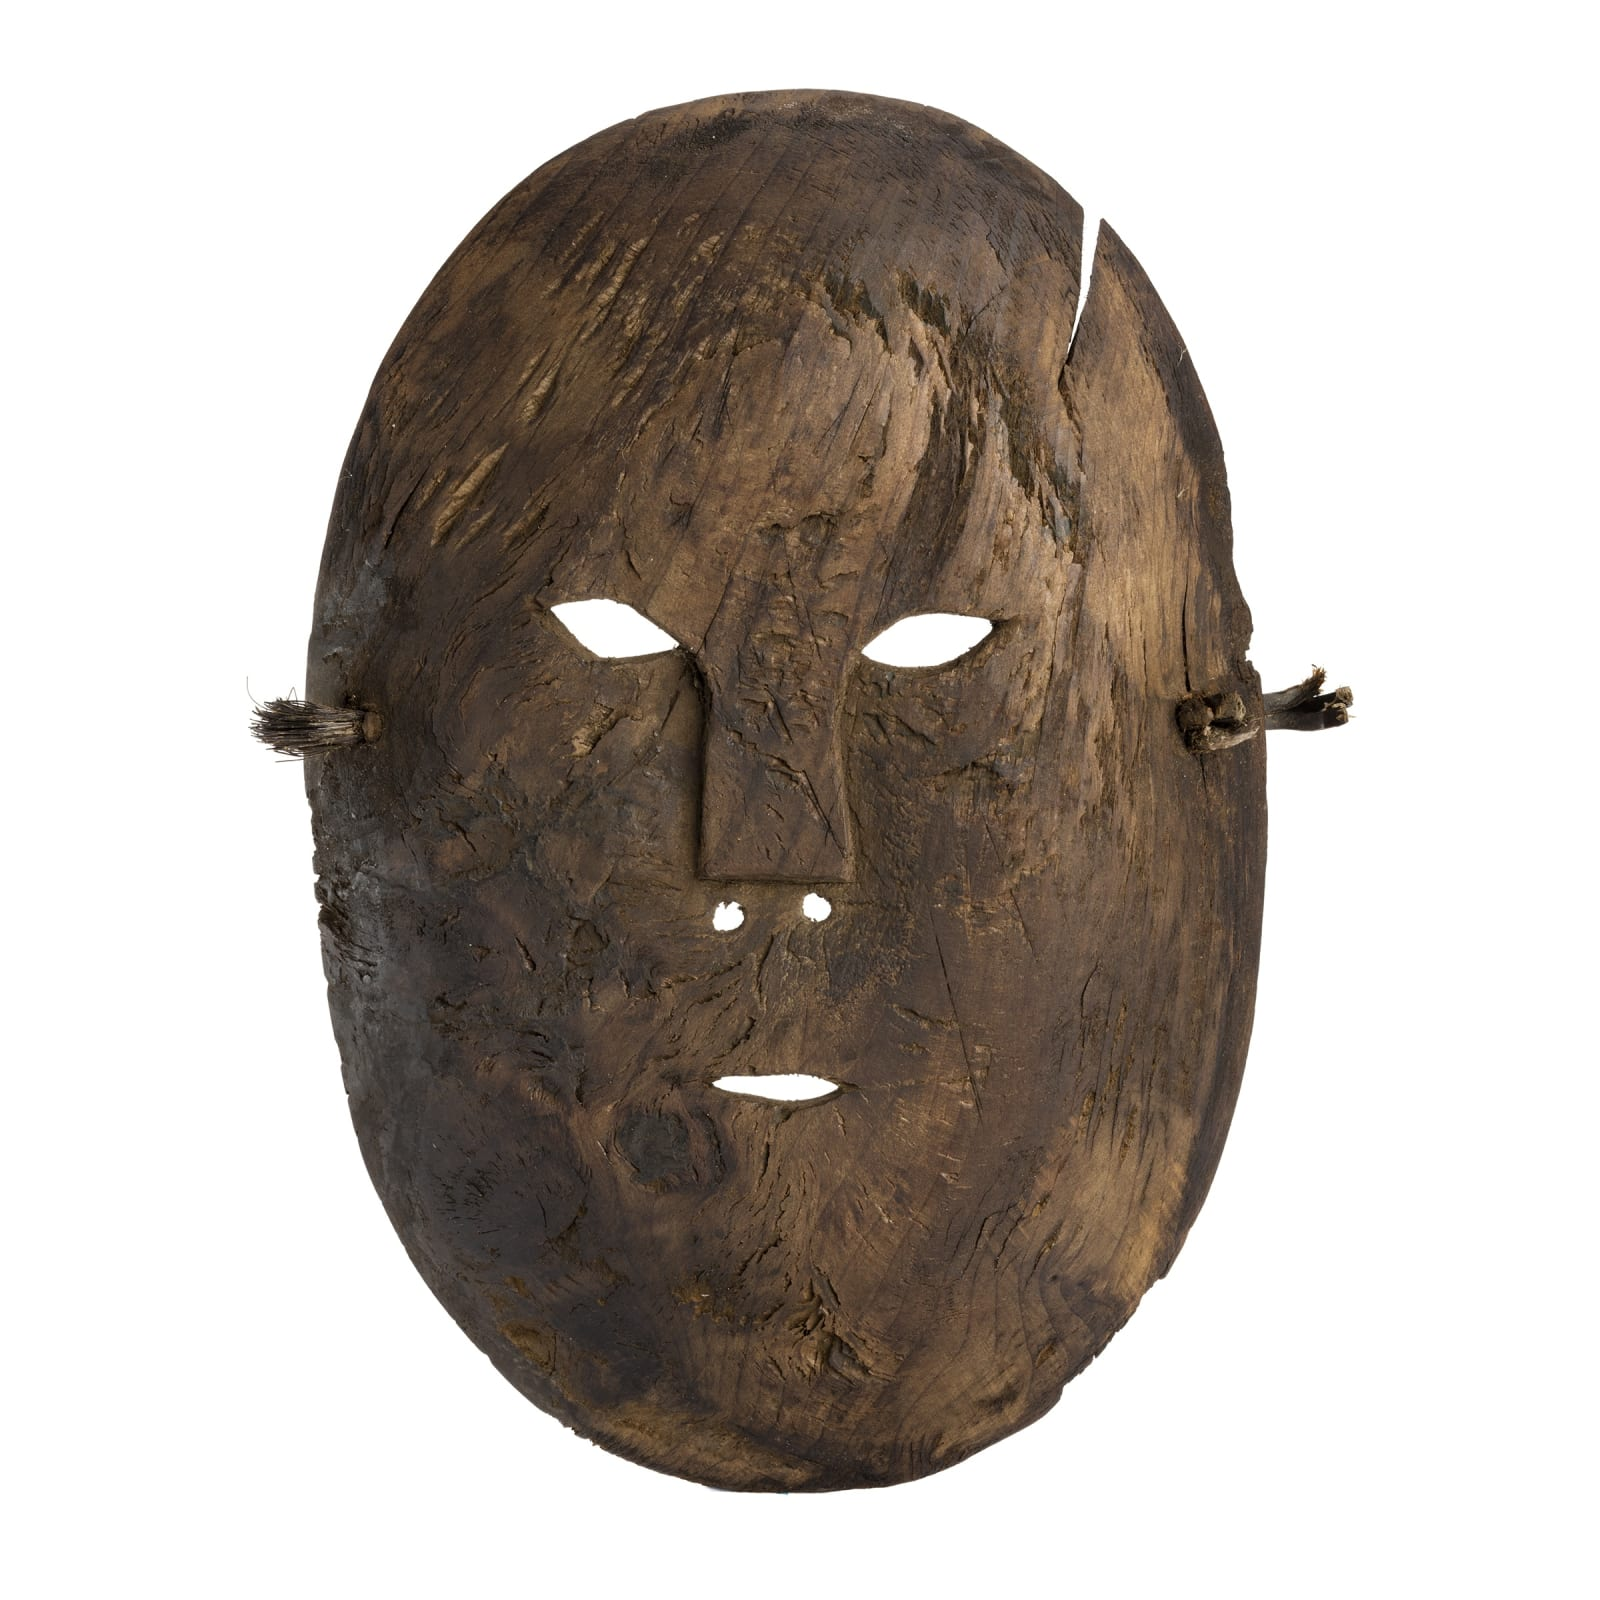 UNIDENTIFIED, Possibly Inupiaq, Point Hope, Alaksa Mask, c. late 19th century REALIZED: $1,920